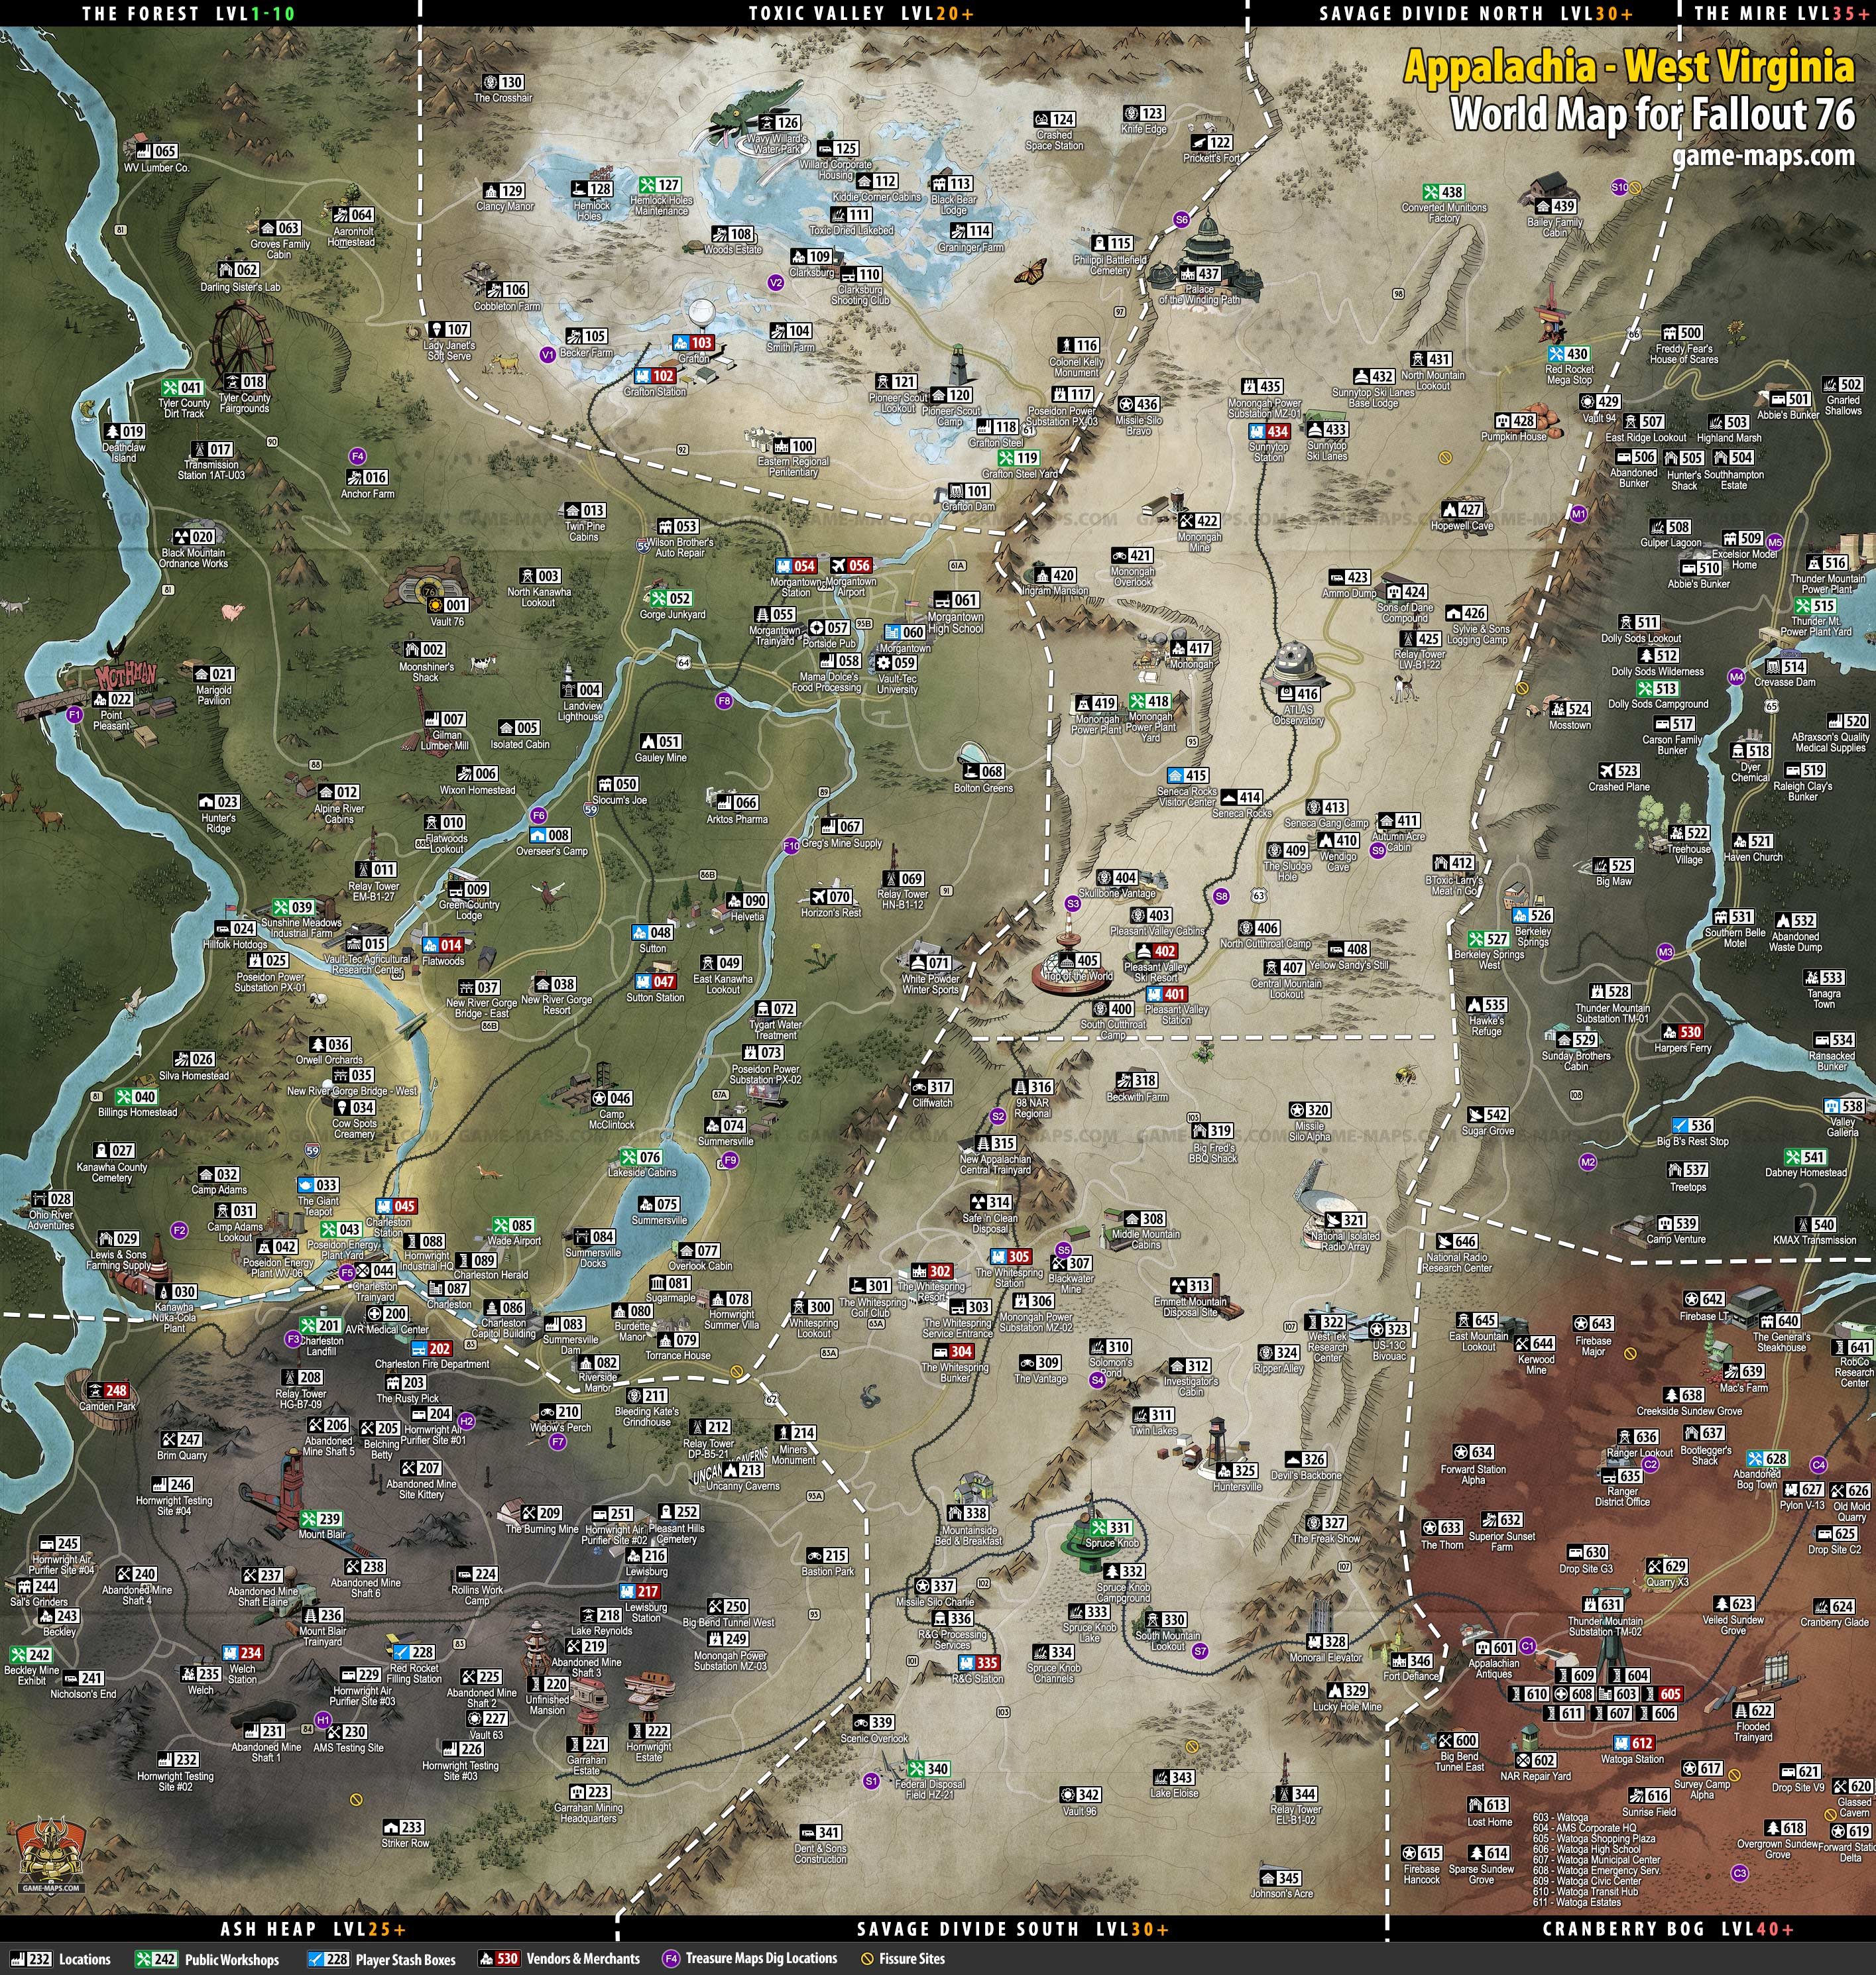 Fallout 76 Map - All Locations, HD, Full Map | game-maps.com on defiance full map, defiance game, defiance zip code, defiance earth map, defiance map bay area, defiance silicon valley map, defiance ps3 map, defiance iowa murder, defiance map overpass on, defiance book, defiance north radio tower, defiance world map,